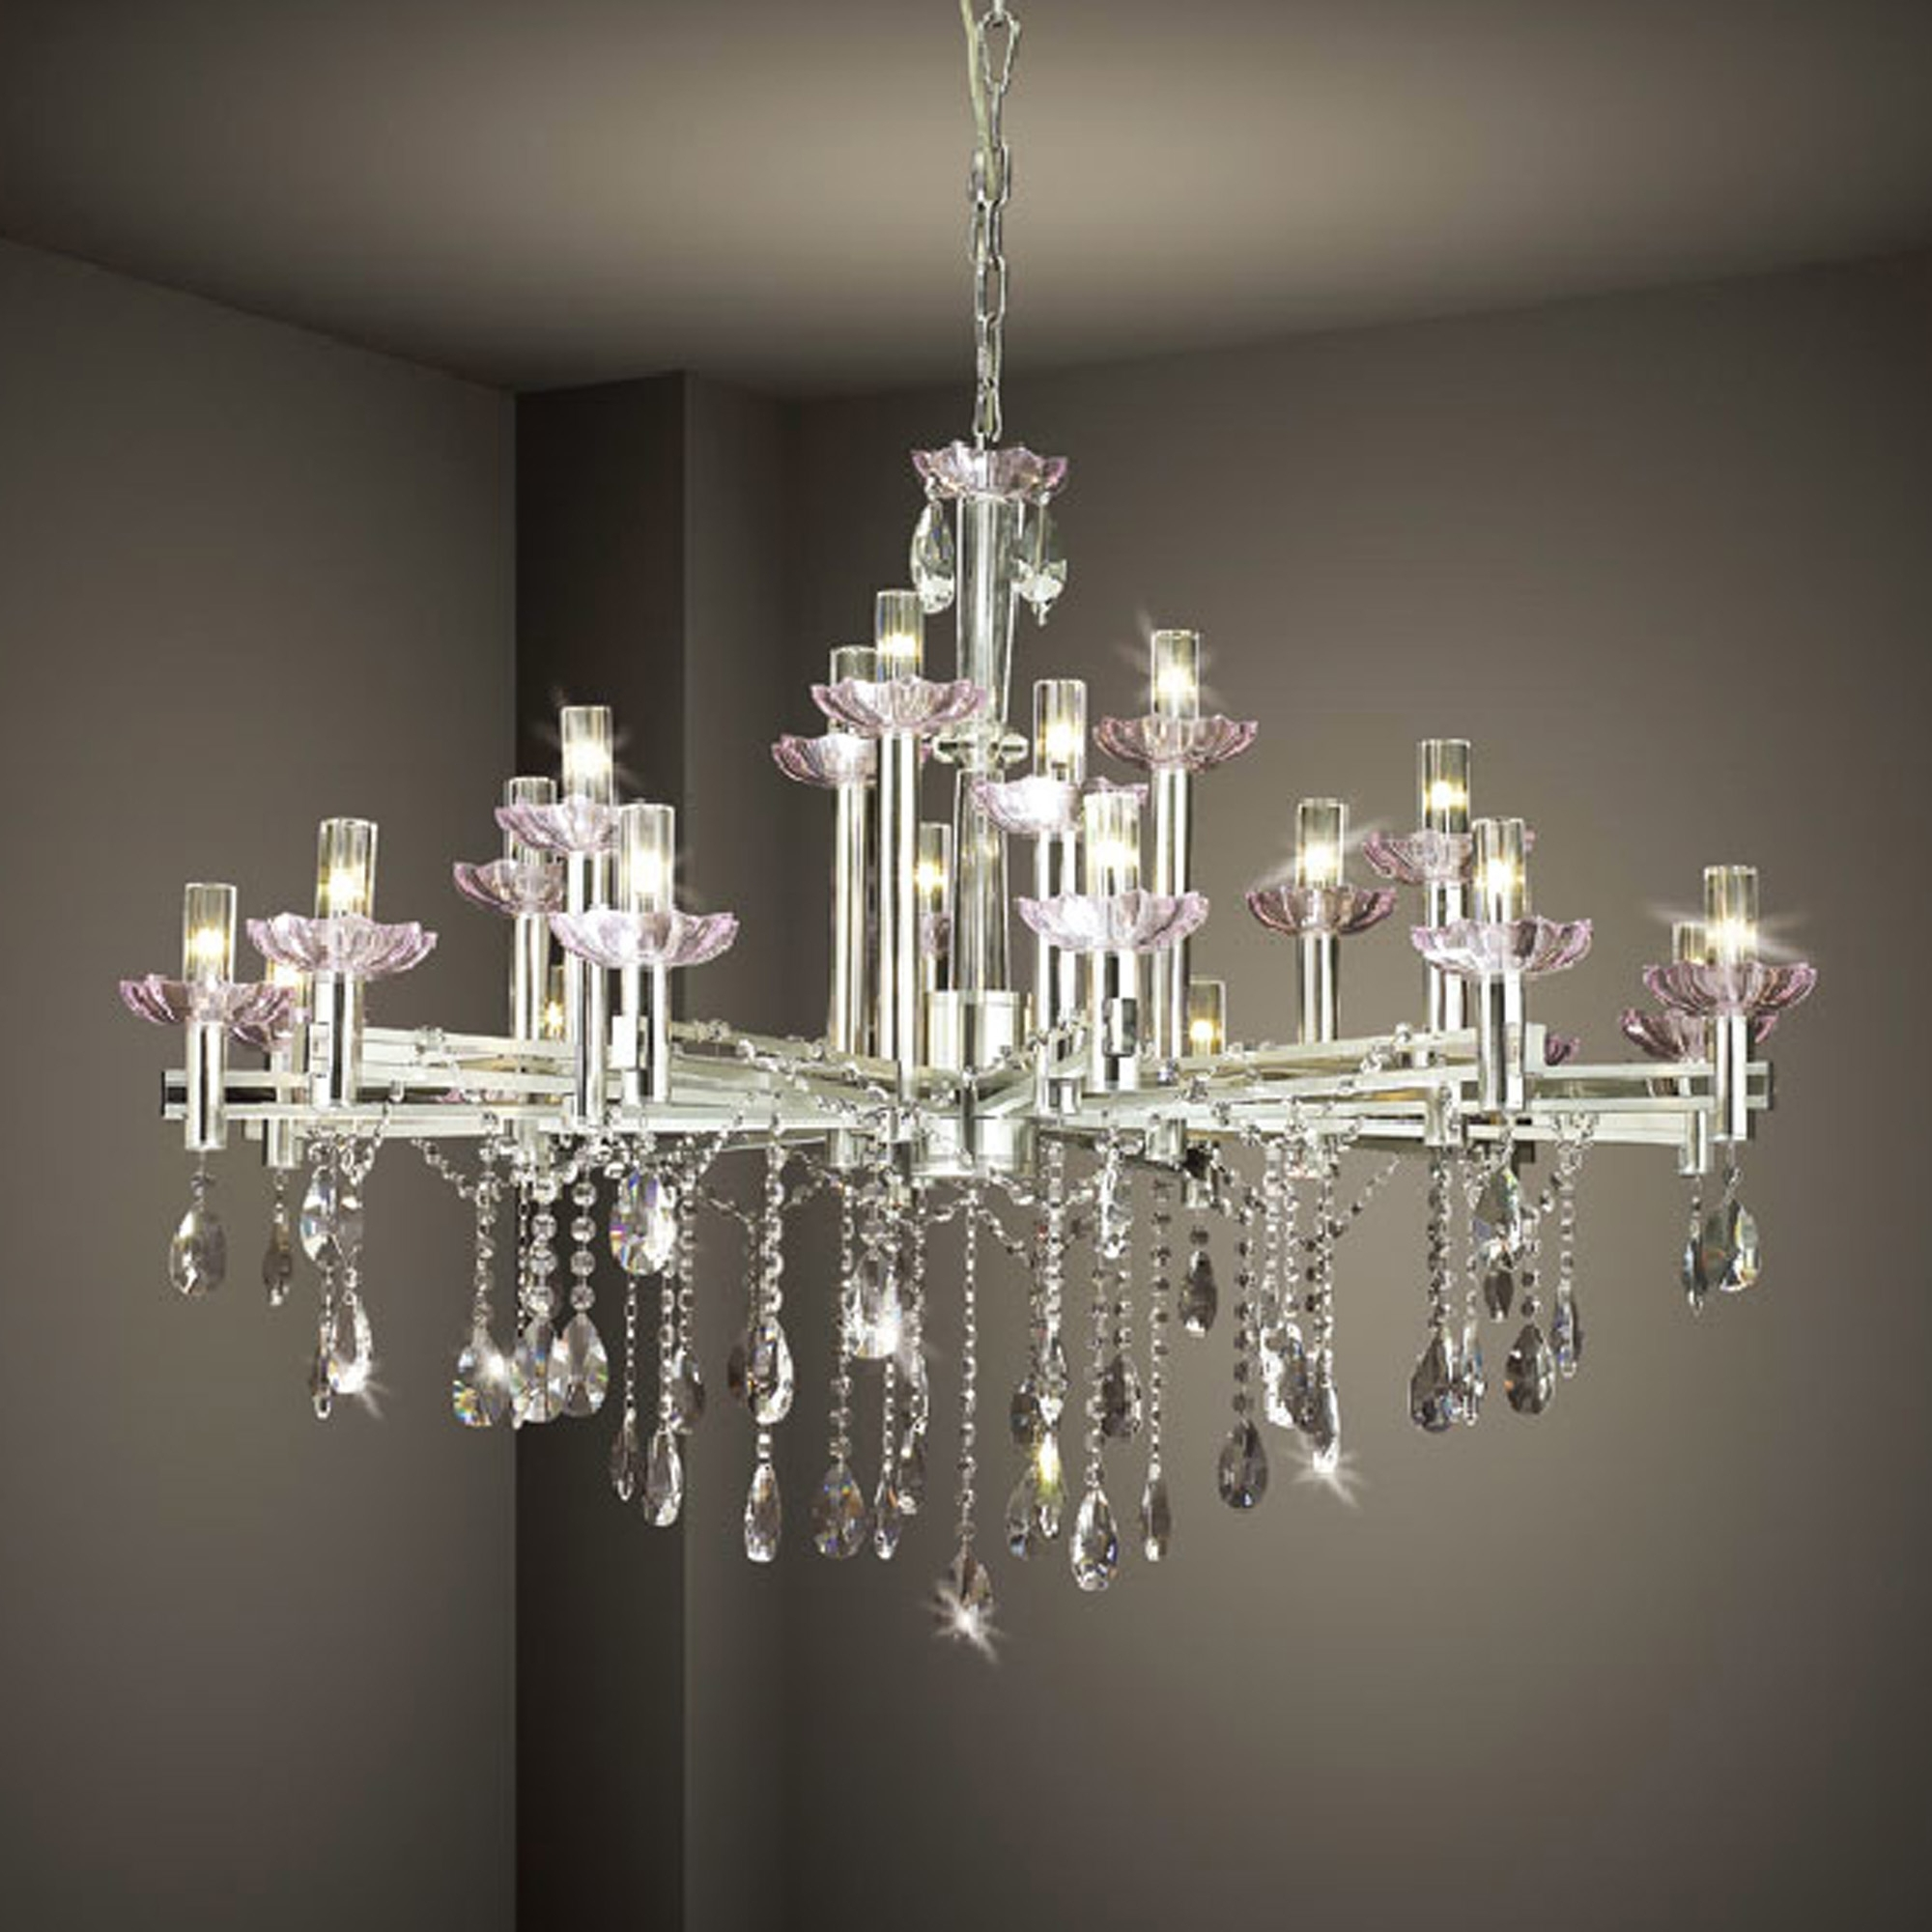 Preferred Chandelier: Inspiring White Modern Chandelier White And Crystal Intended For White Contemporary Chandelier (View 14 of 20)